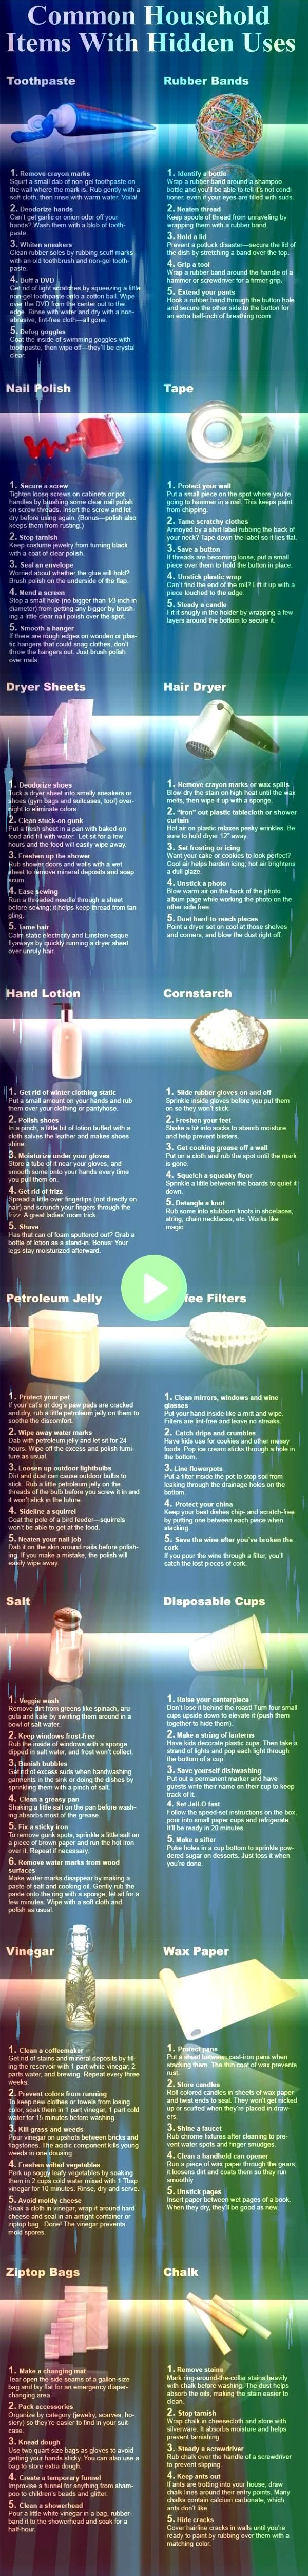 household items with hidden uses diy diy ideas easy diy how to remedies remedy tips tutorials life hacks life hack money saving good to knowCommon household items with hi...